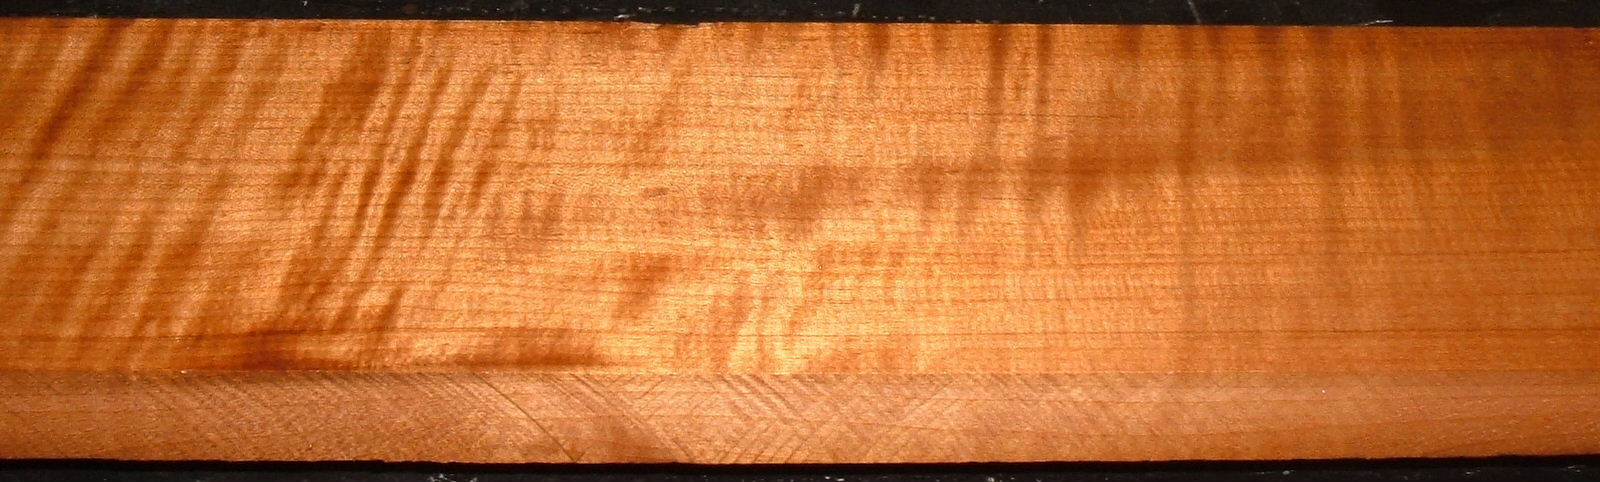 QRM2101-6JK, 1-1/8x4-3/8x46, Quartersawn Roasted Curly Maple